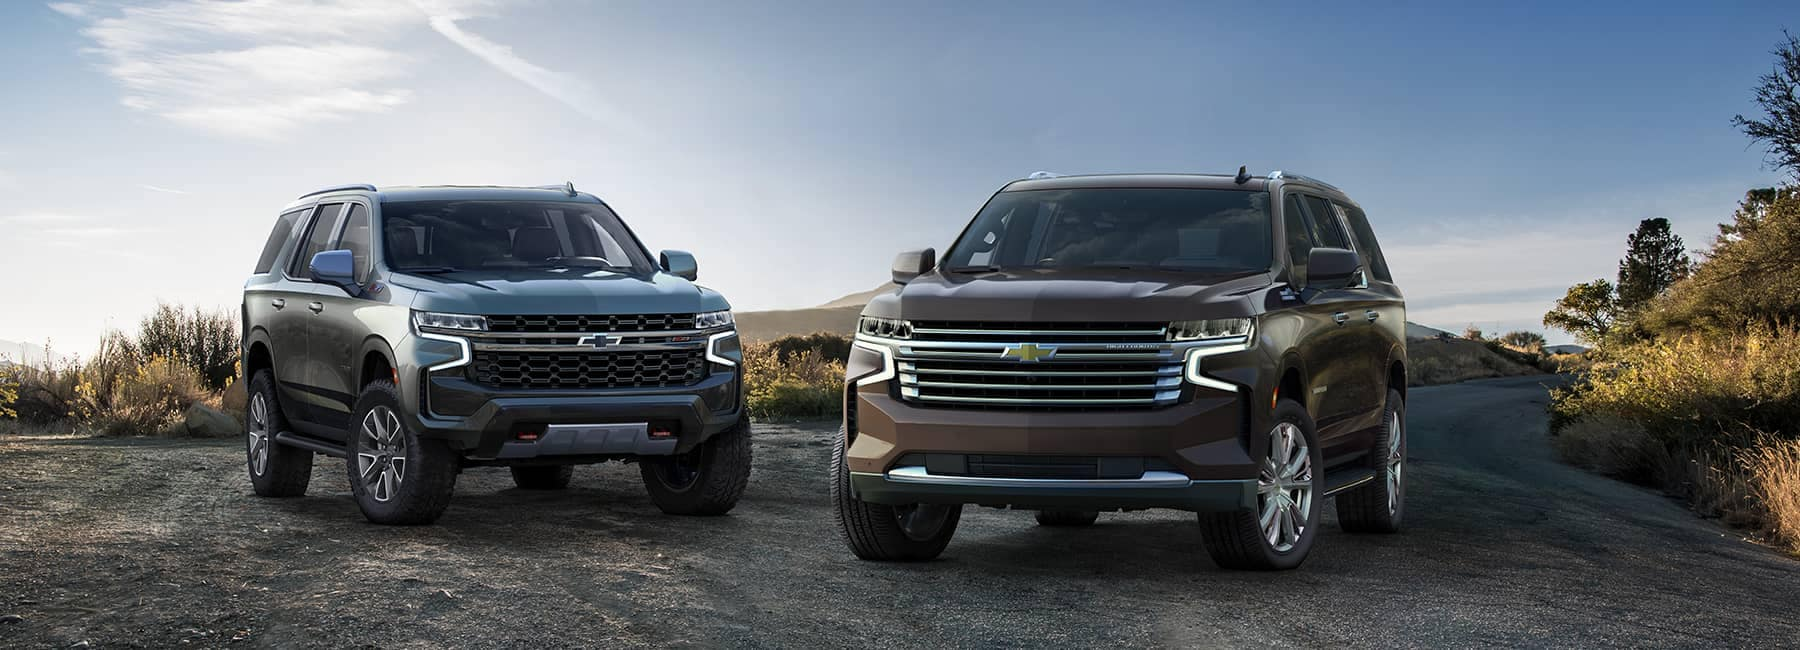 2021 Chevrolet Suburbans parked side-by-sid